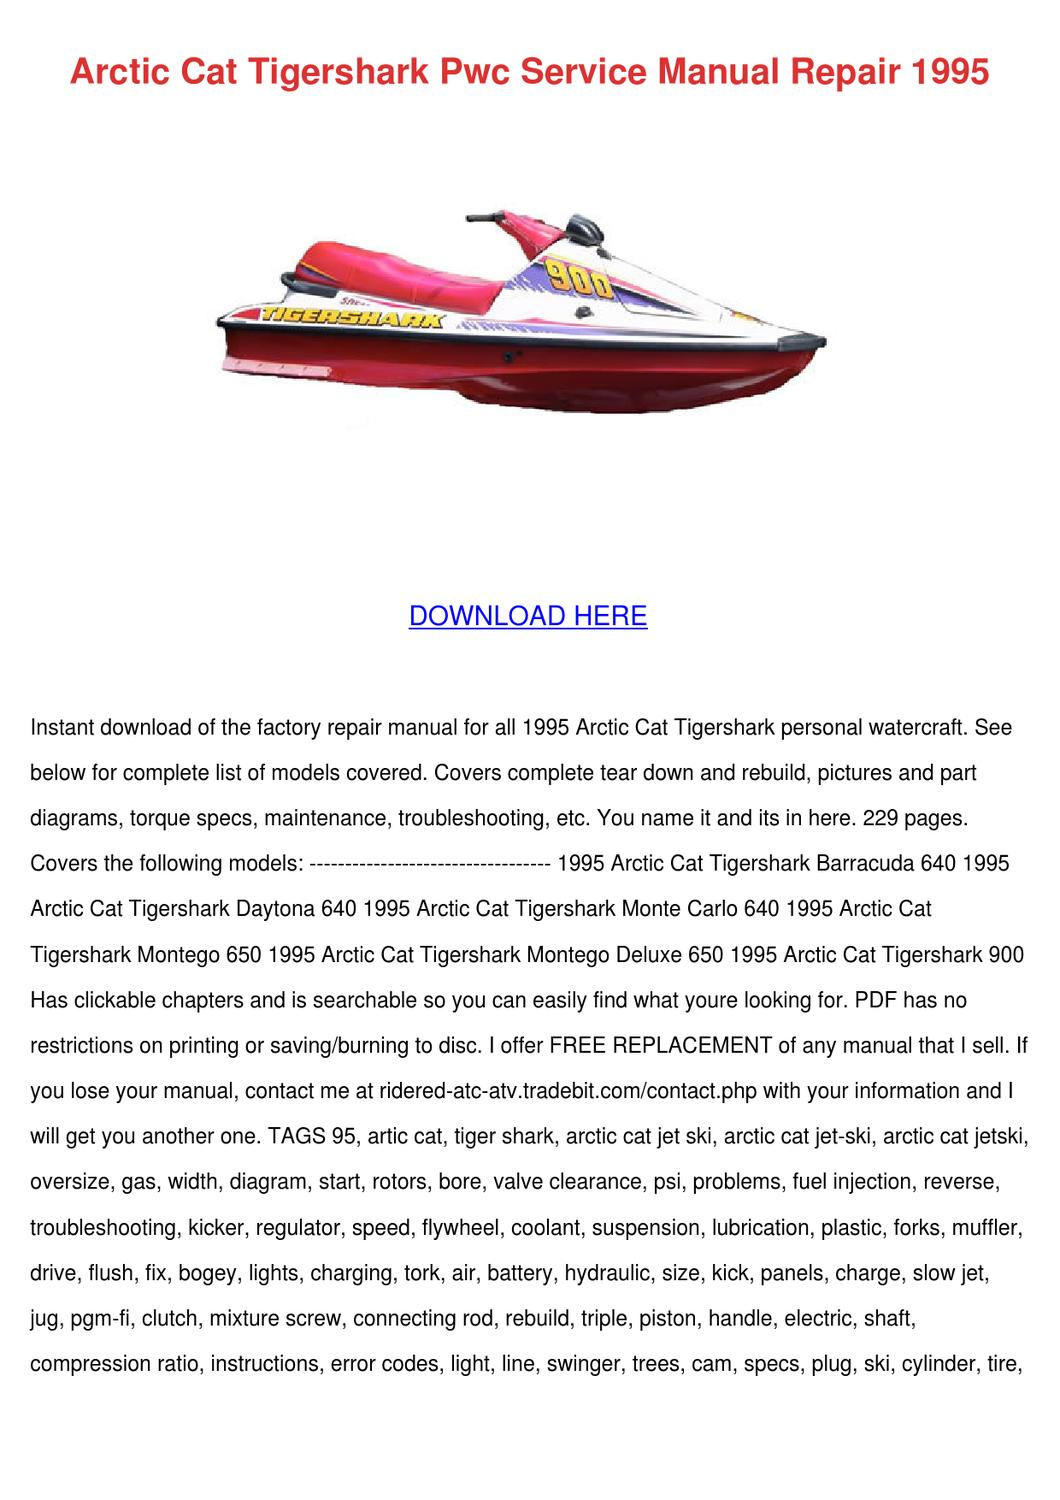 [SODI_2457]   566 1996 Tiger Shark Jet Ski Repair Manual | Wiring Library | Arctic Cat Jet Ski Wiring Diagrams |  | Wiring Library